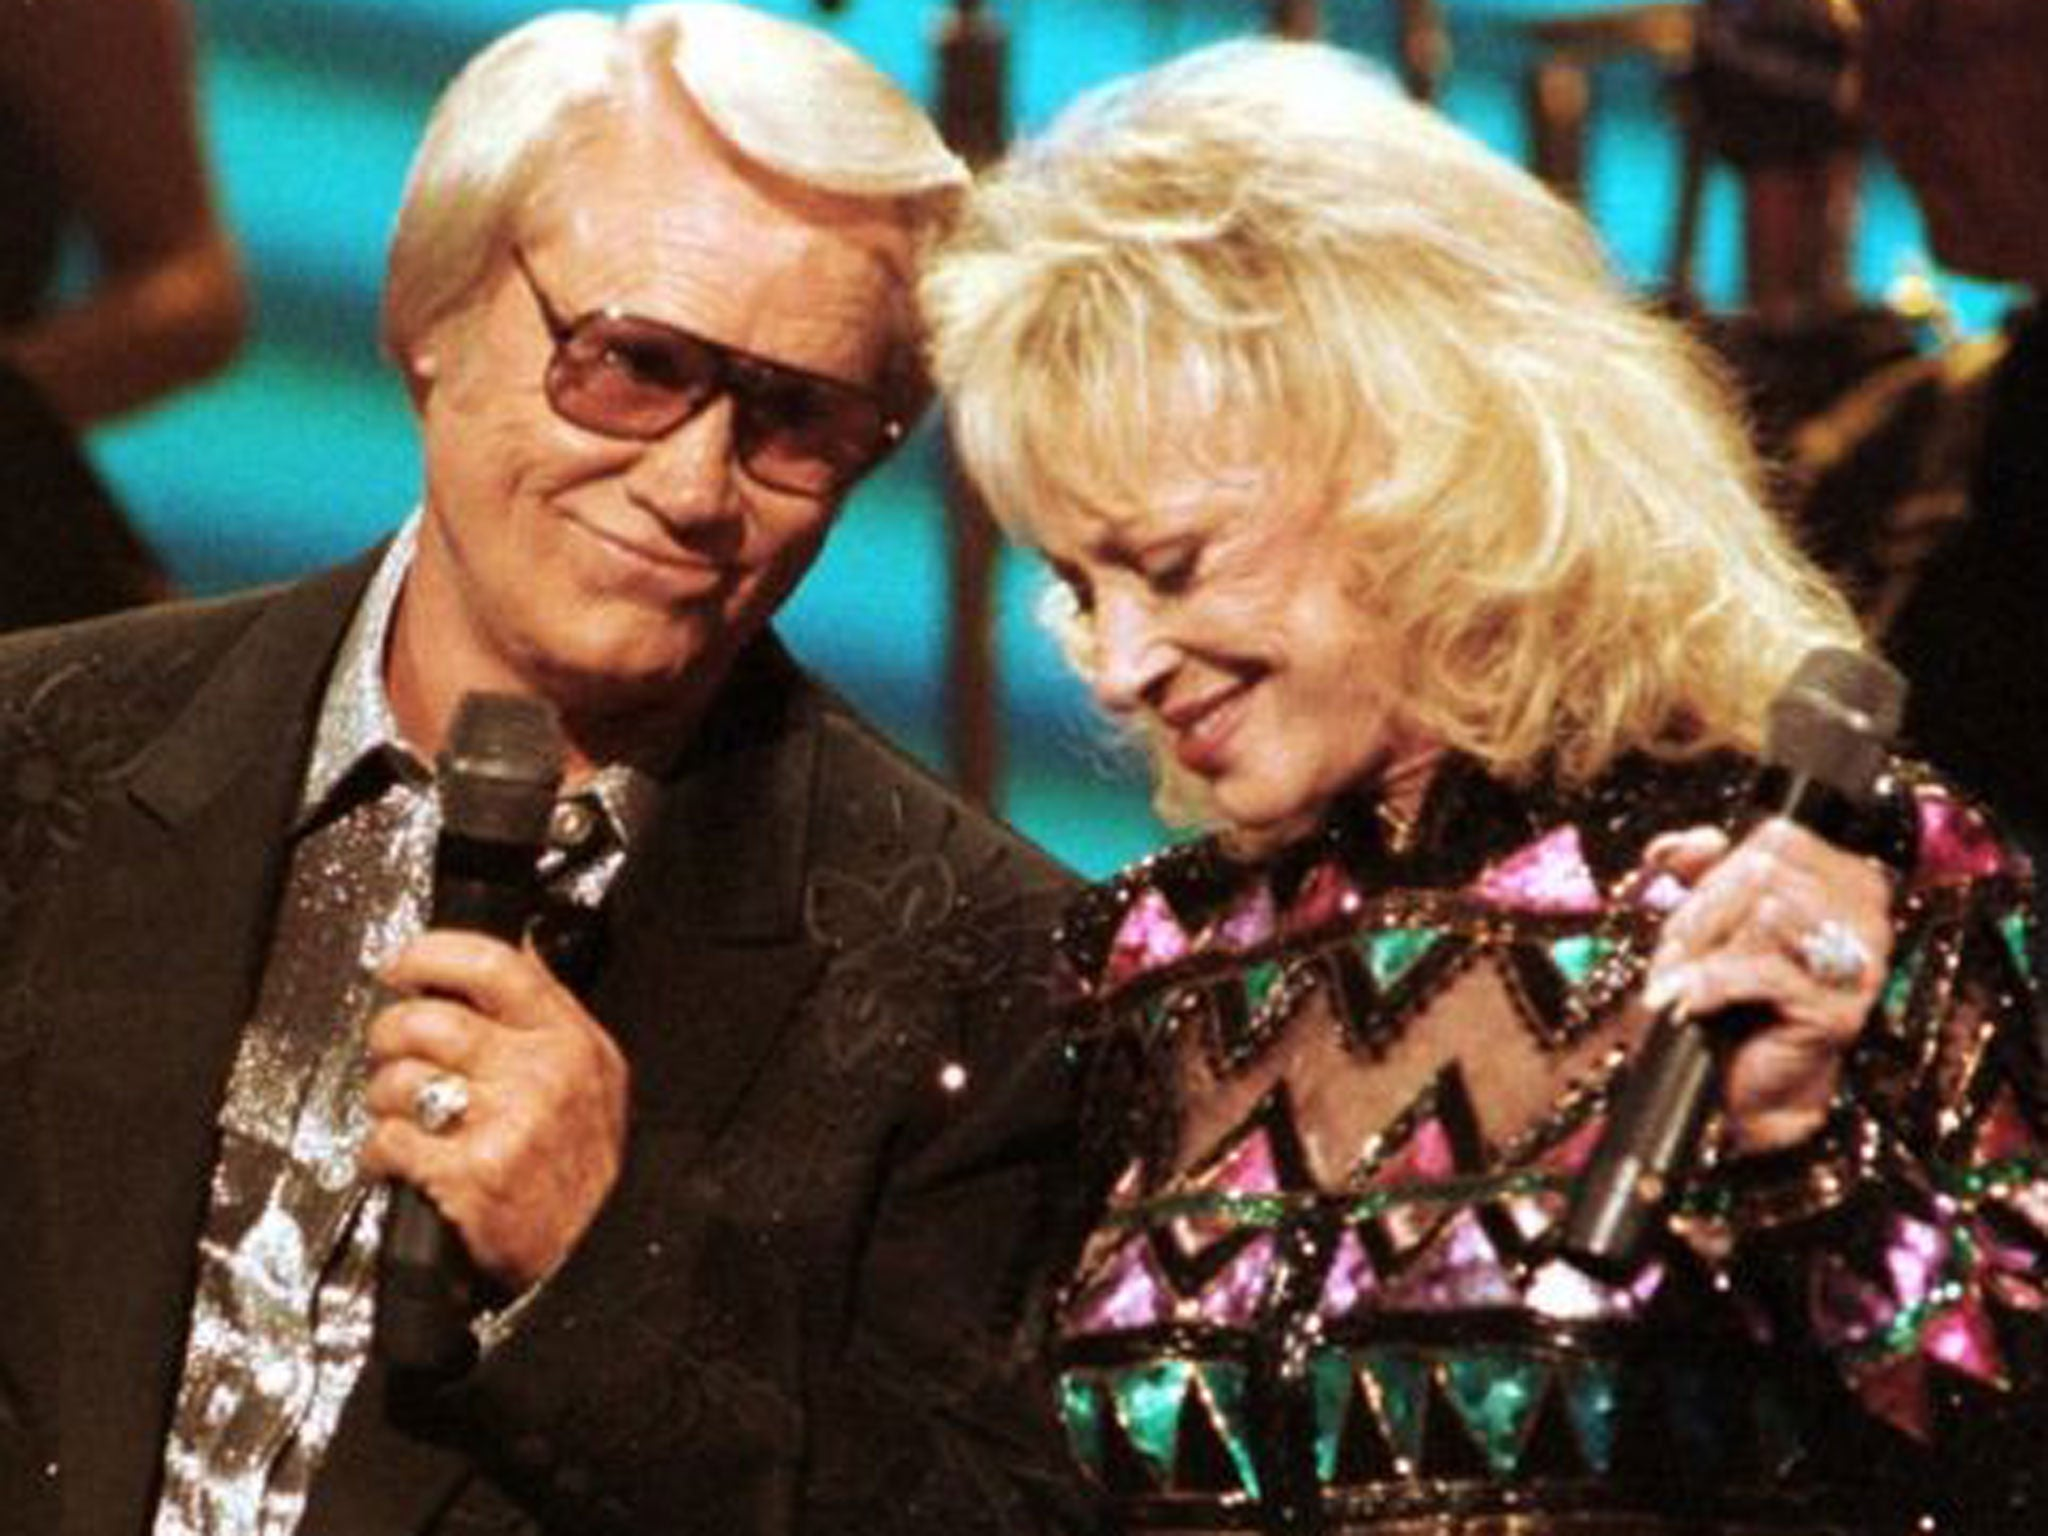 George Jones: Country singer whose music was informed by ...